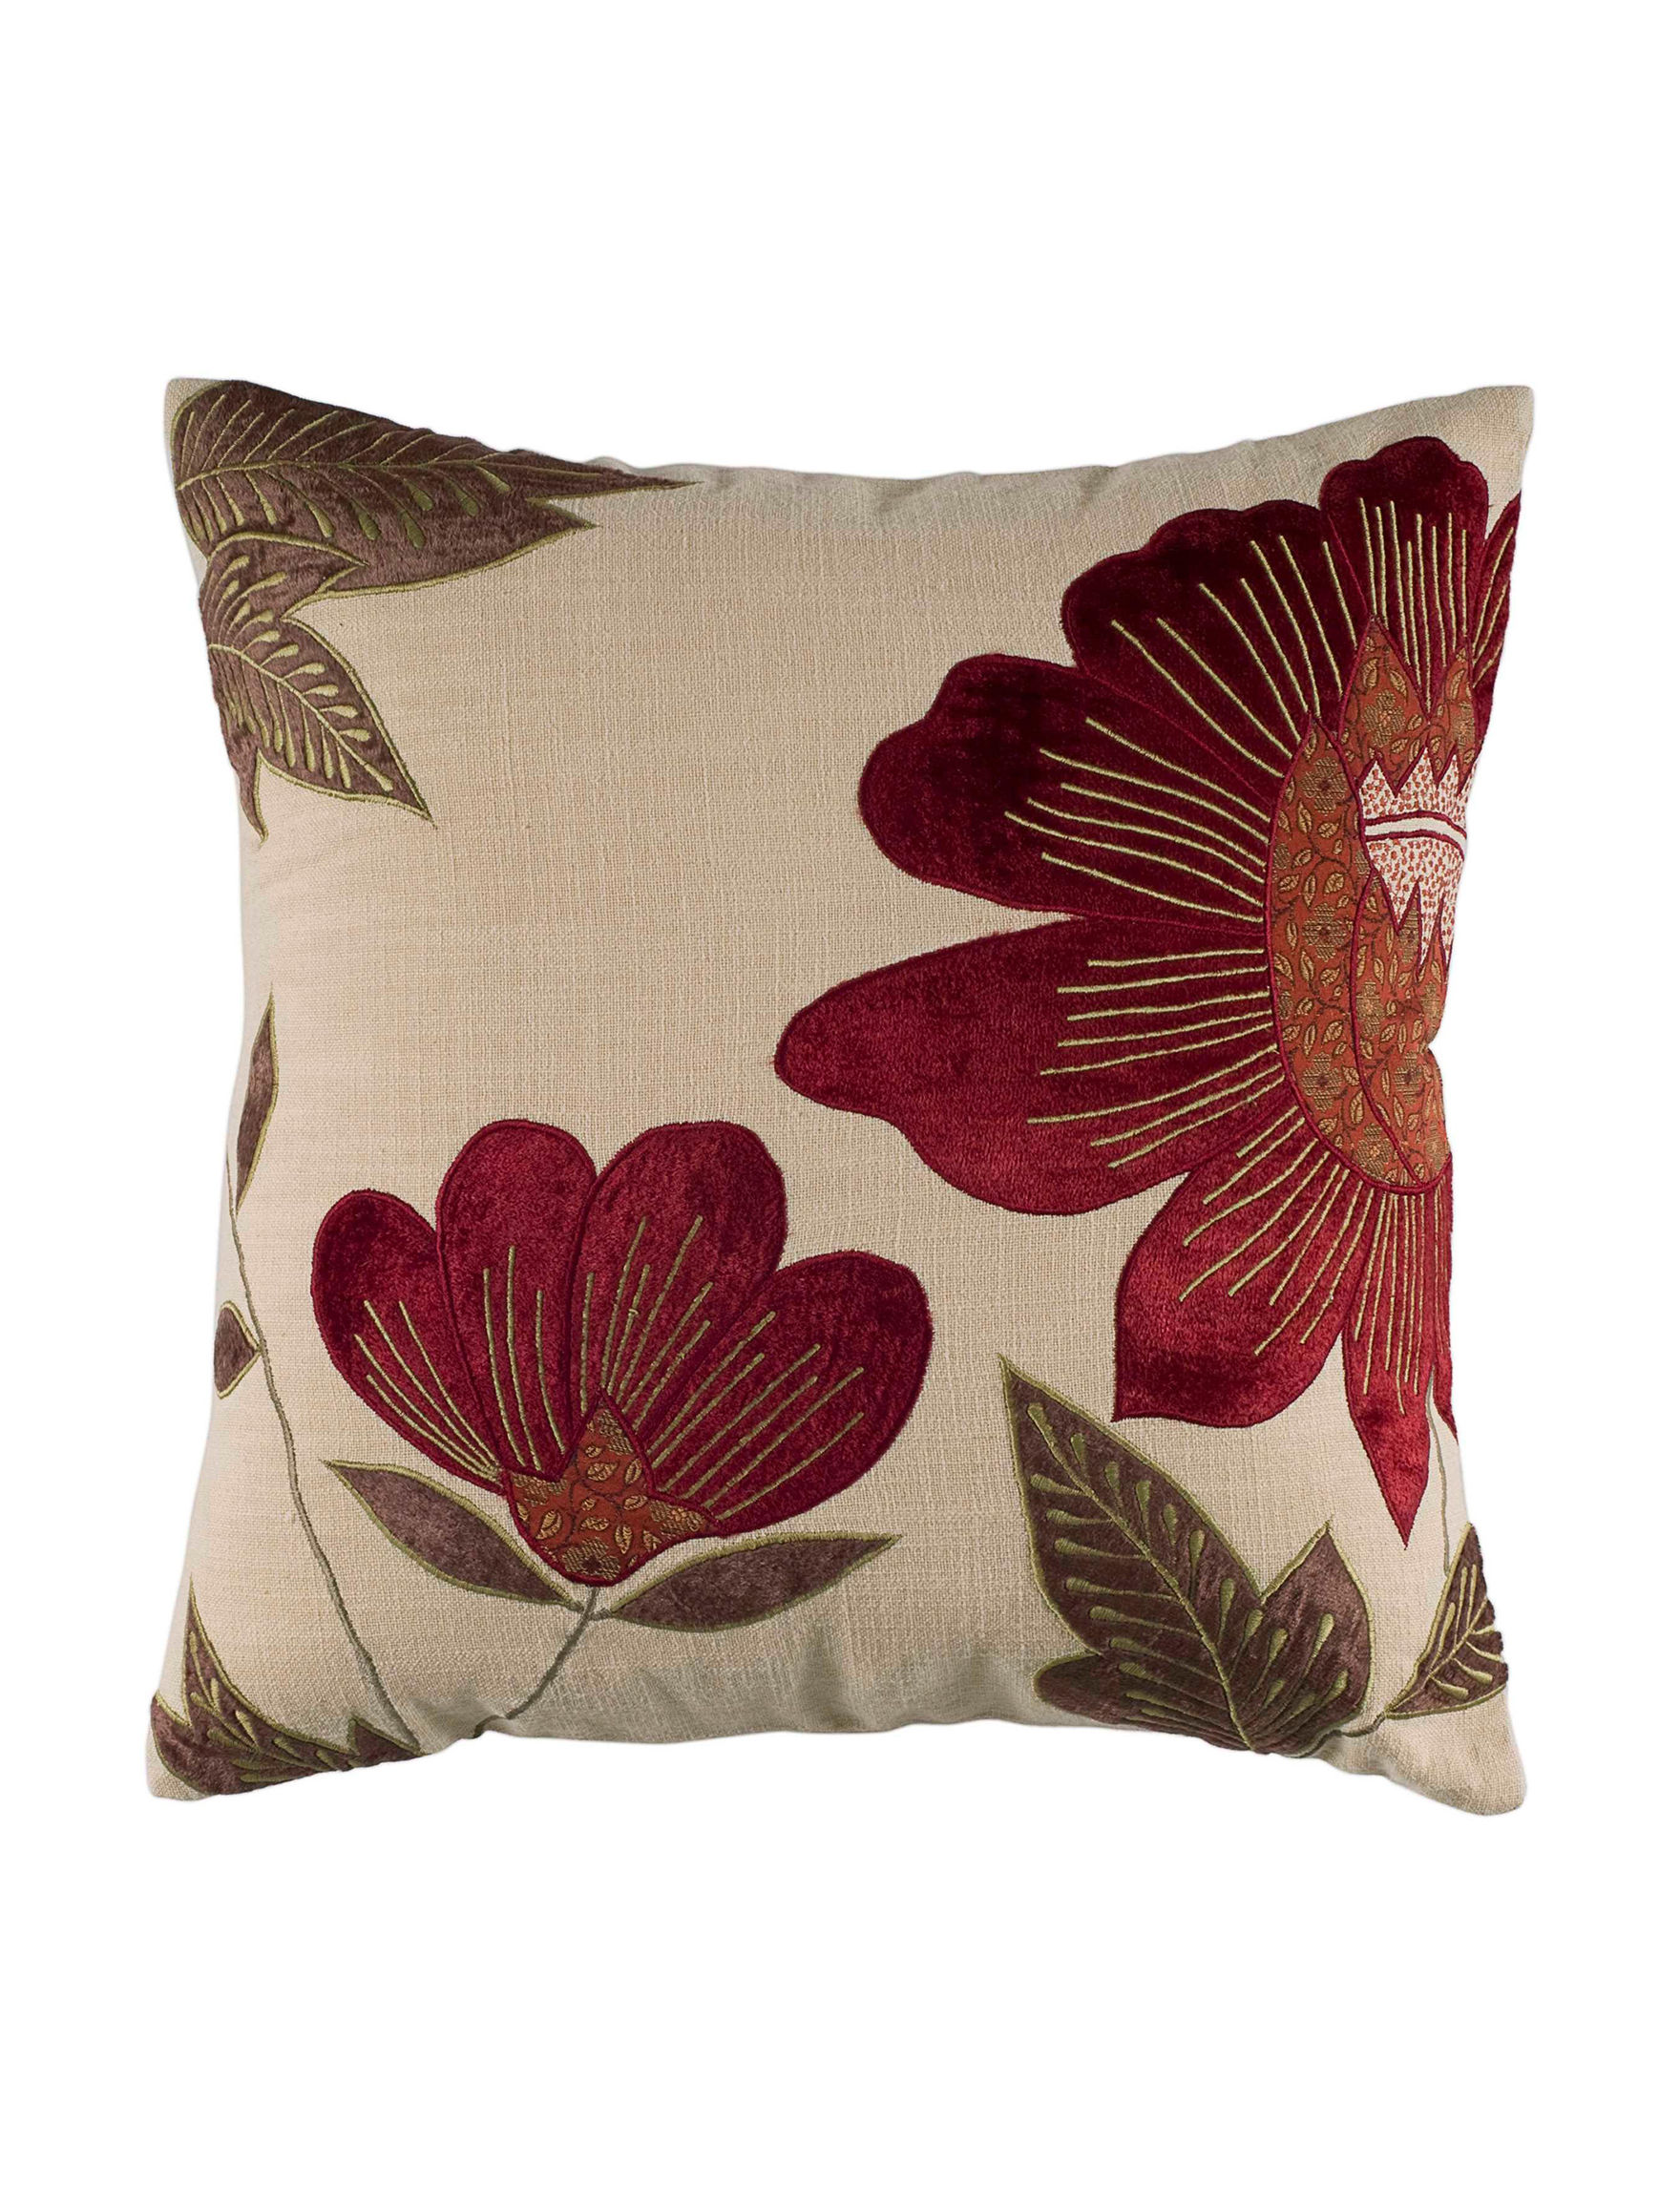 Rizzy Home Beige Floral Decorative Pillows